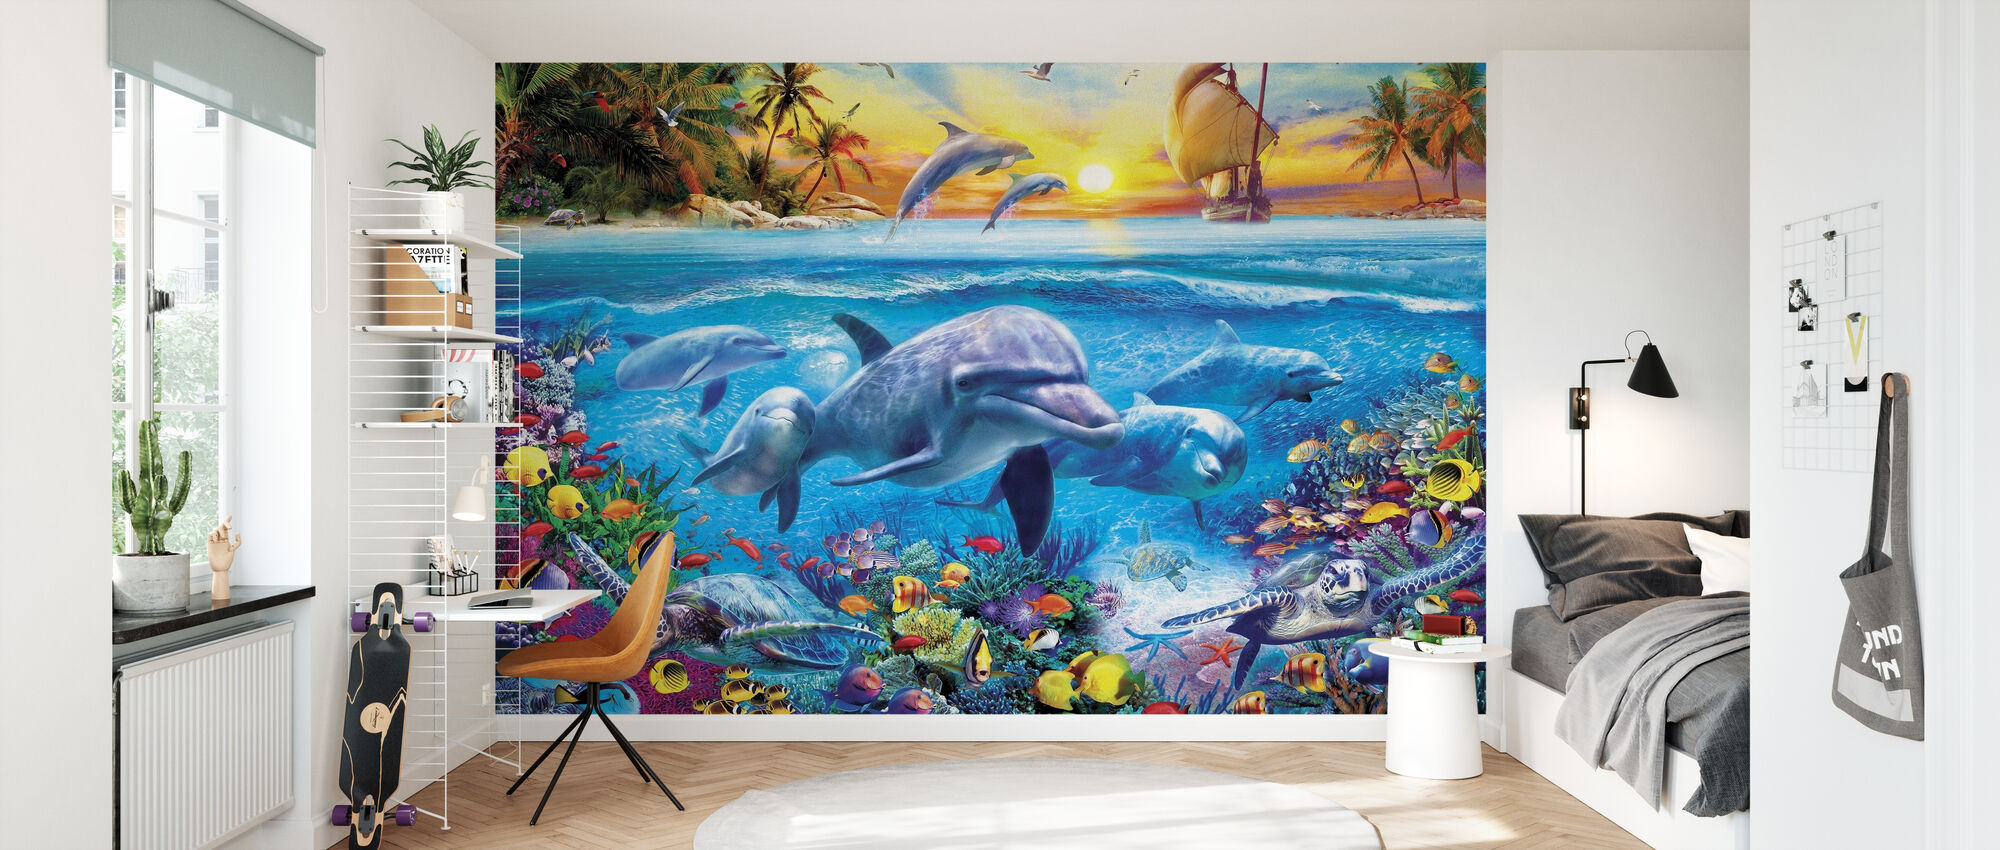 Dolphins and Ship - Wallpaper - Kids Room